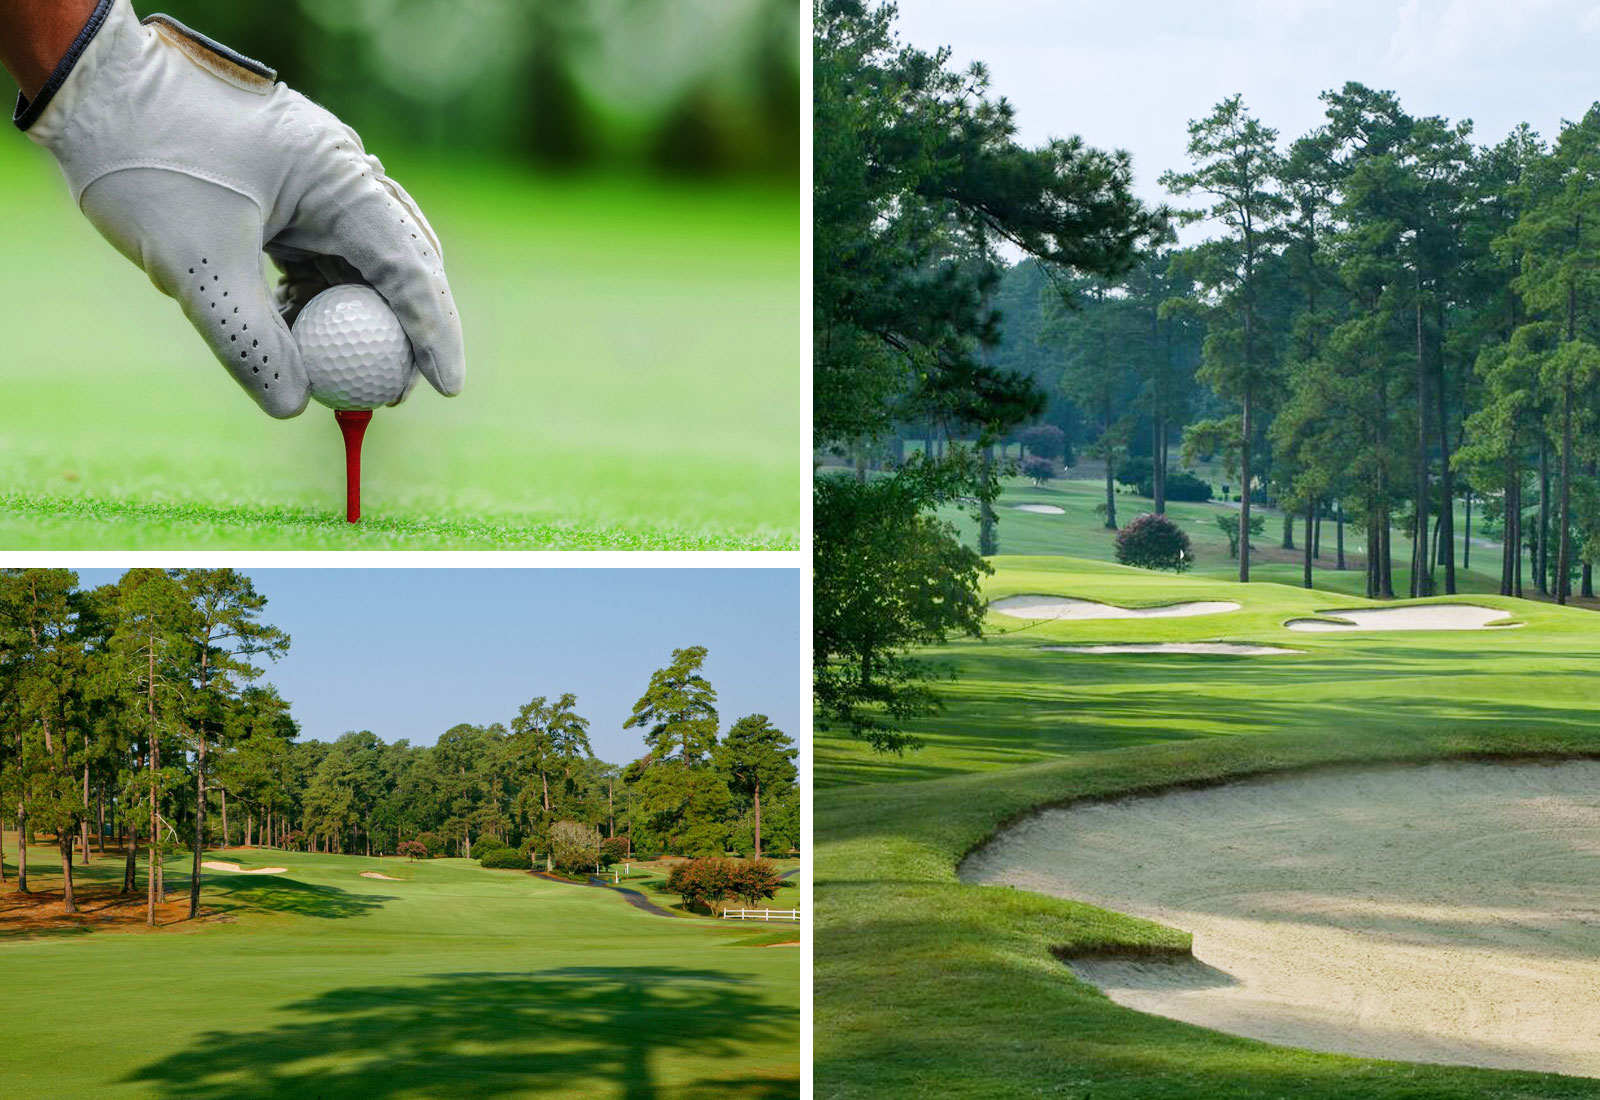 Play a round of golf at Forest Hills Golf Club or Gordon Lakes Golf Club